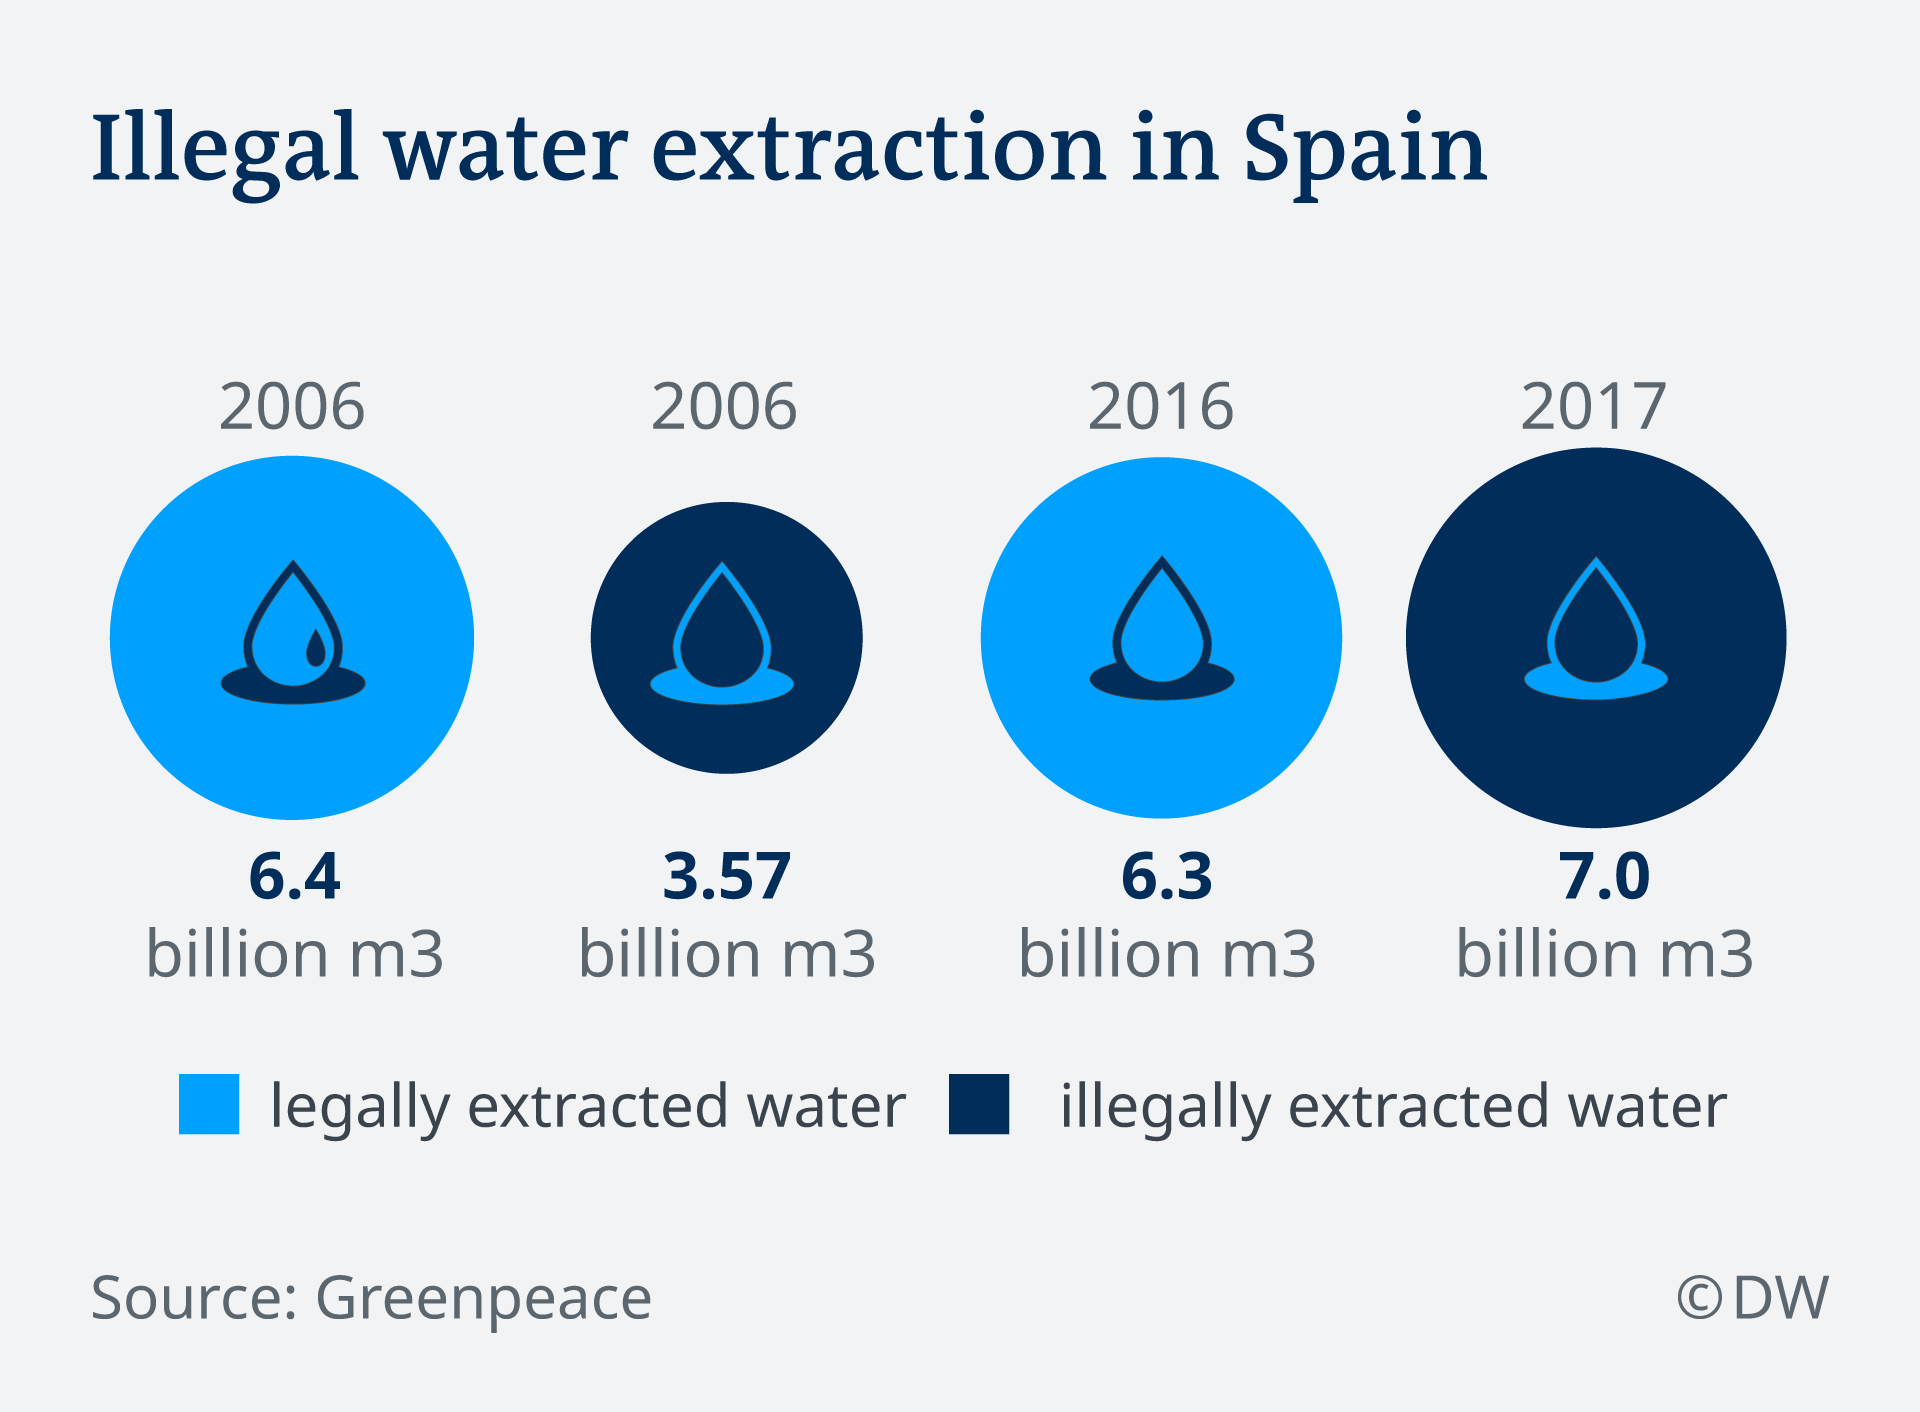 Infographic showing the differences in legally and illegally extracted water